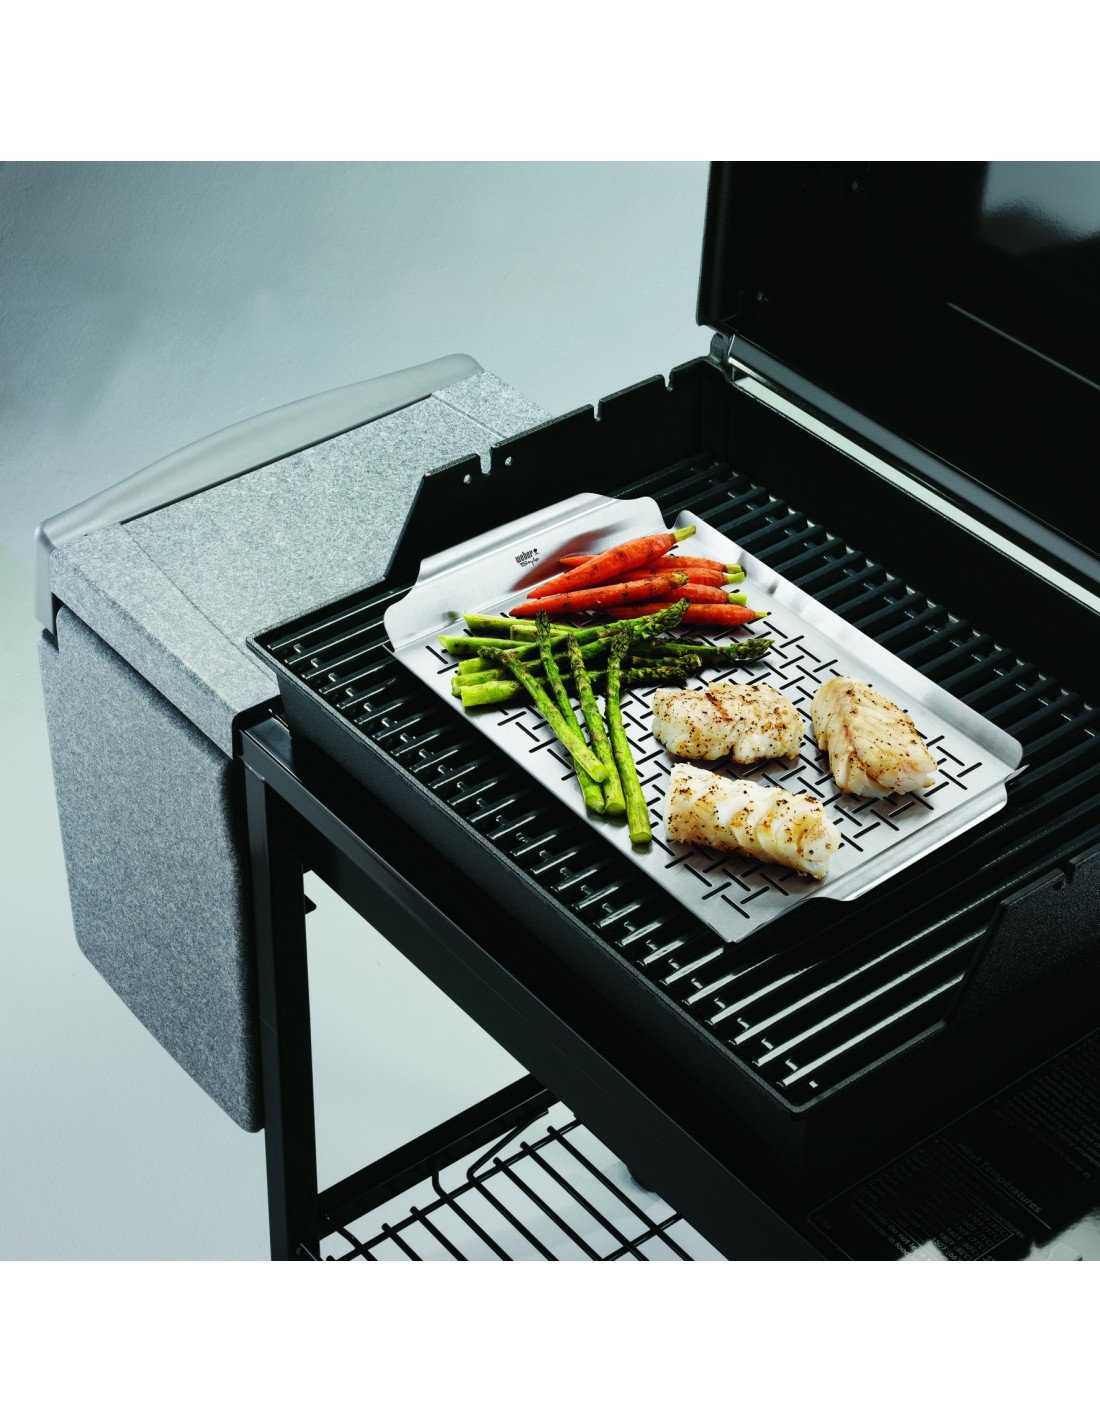 recette barbecue weber gaz fabulous nos barbecues au gaz with recette barbecue weber gaz. Black Bedroom Furniture Sets. Home Design Ideas